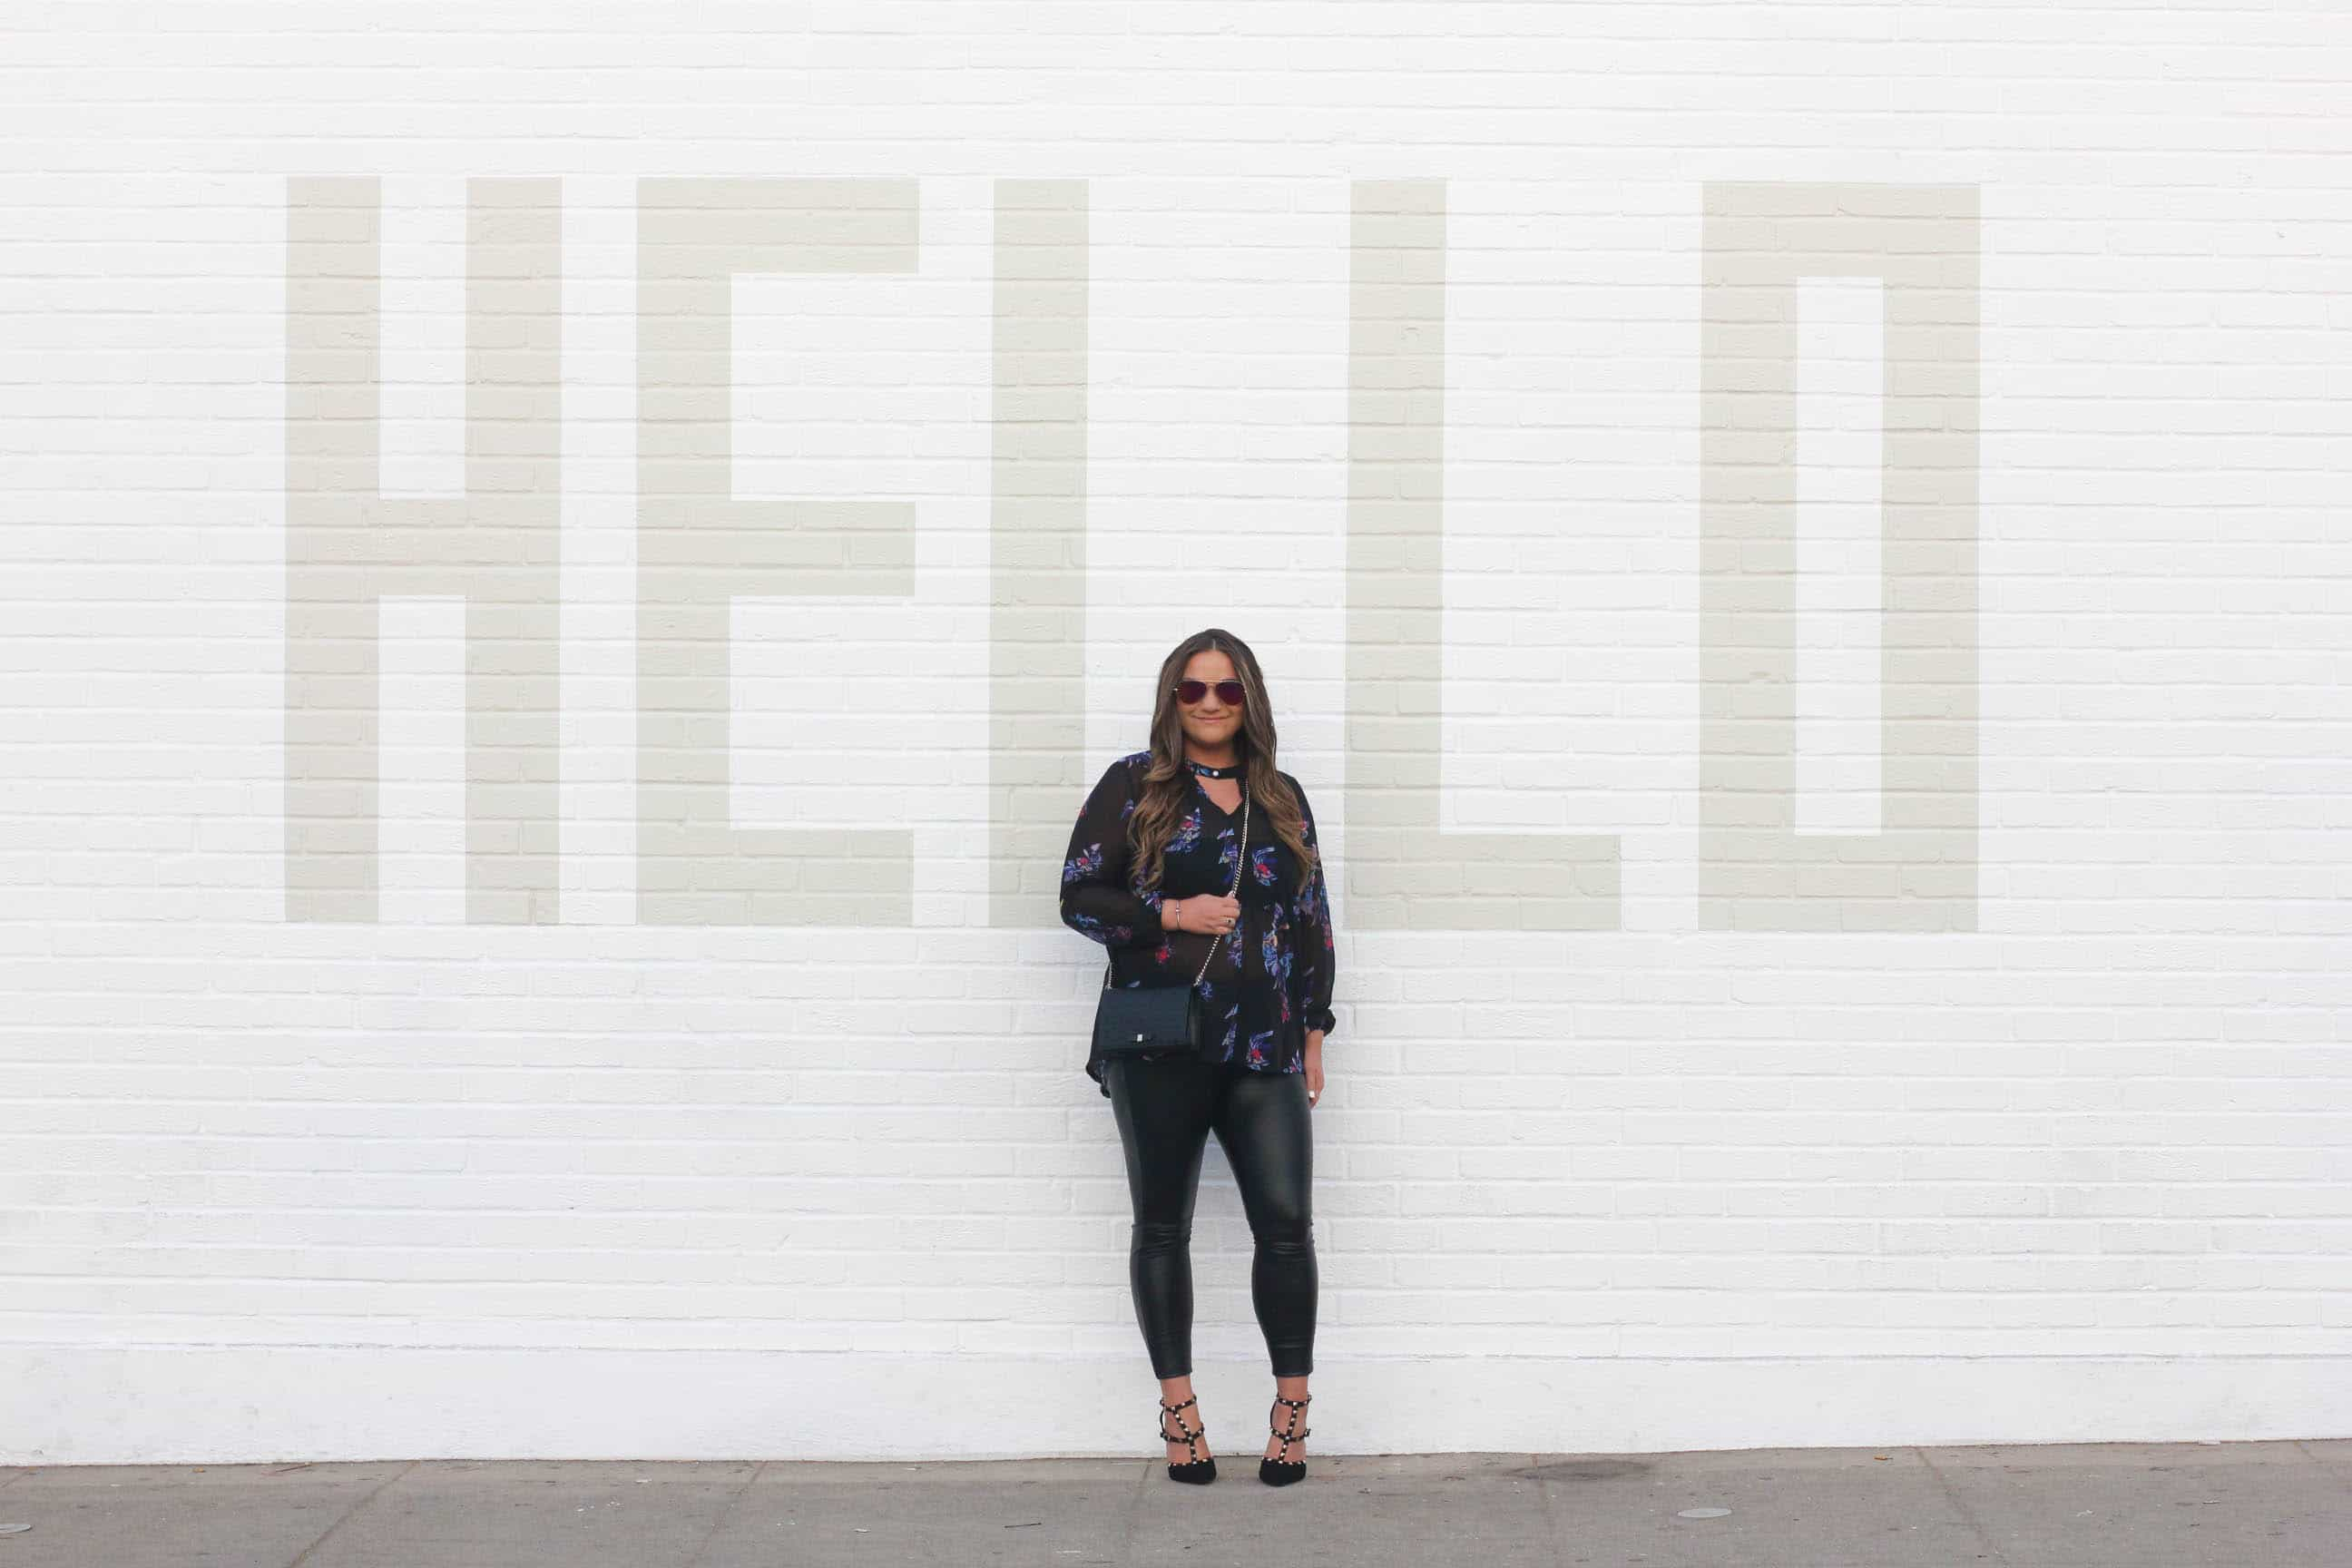 missyonmadison, missyonmadison instagram, missyonmadison blog, melissa tierney, fashion blog, fashion blogger, style blog, style blogger, la blogger, bloglovin, hello wall, wall crawl la, los angeles wall crawl, black rockstud pumps, valentino rockstud pumps, black studded pumps, gucci mini bag, gucci chain on wallet, gucci leather crossbody, diff eyewear aviators, diff eyewear pink aviators, hue leather leggings, hue leatherette leggings, faux leather leggings, floral sheer blouse, sheer choker blouse, sheer floral choker blouse, date night style, date night look, date night 2018, date night 2018 style, what to wear for date night,